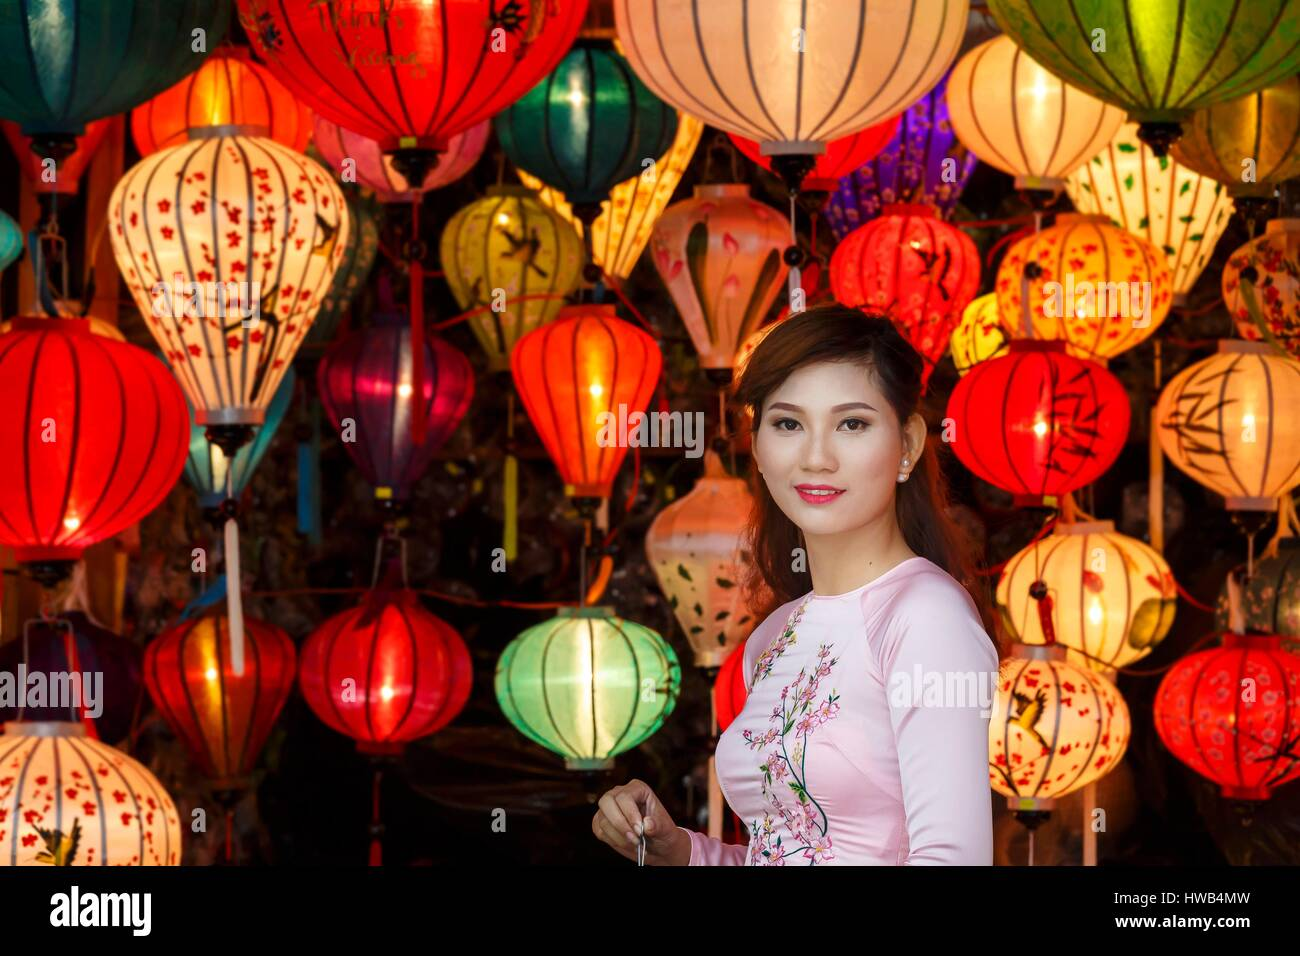 Vietnam, Quang Nam Province, Hoi An, bride surrounded by chinese lanterns - Stock Image